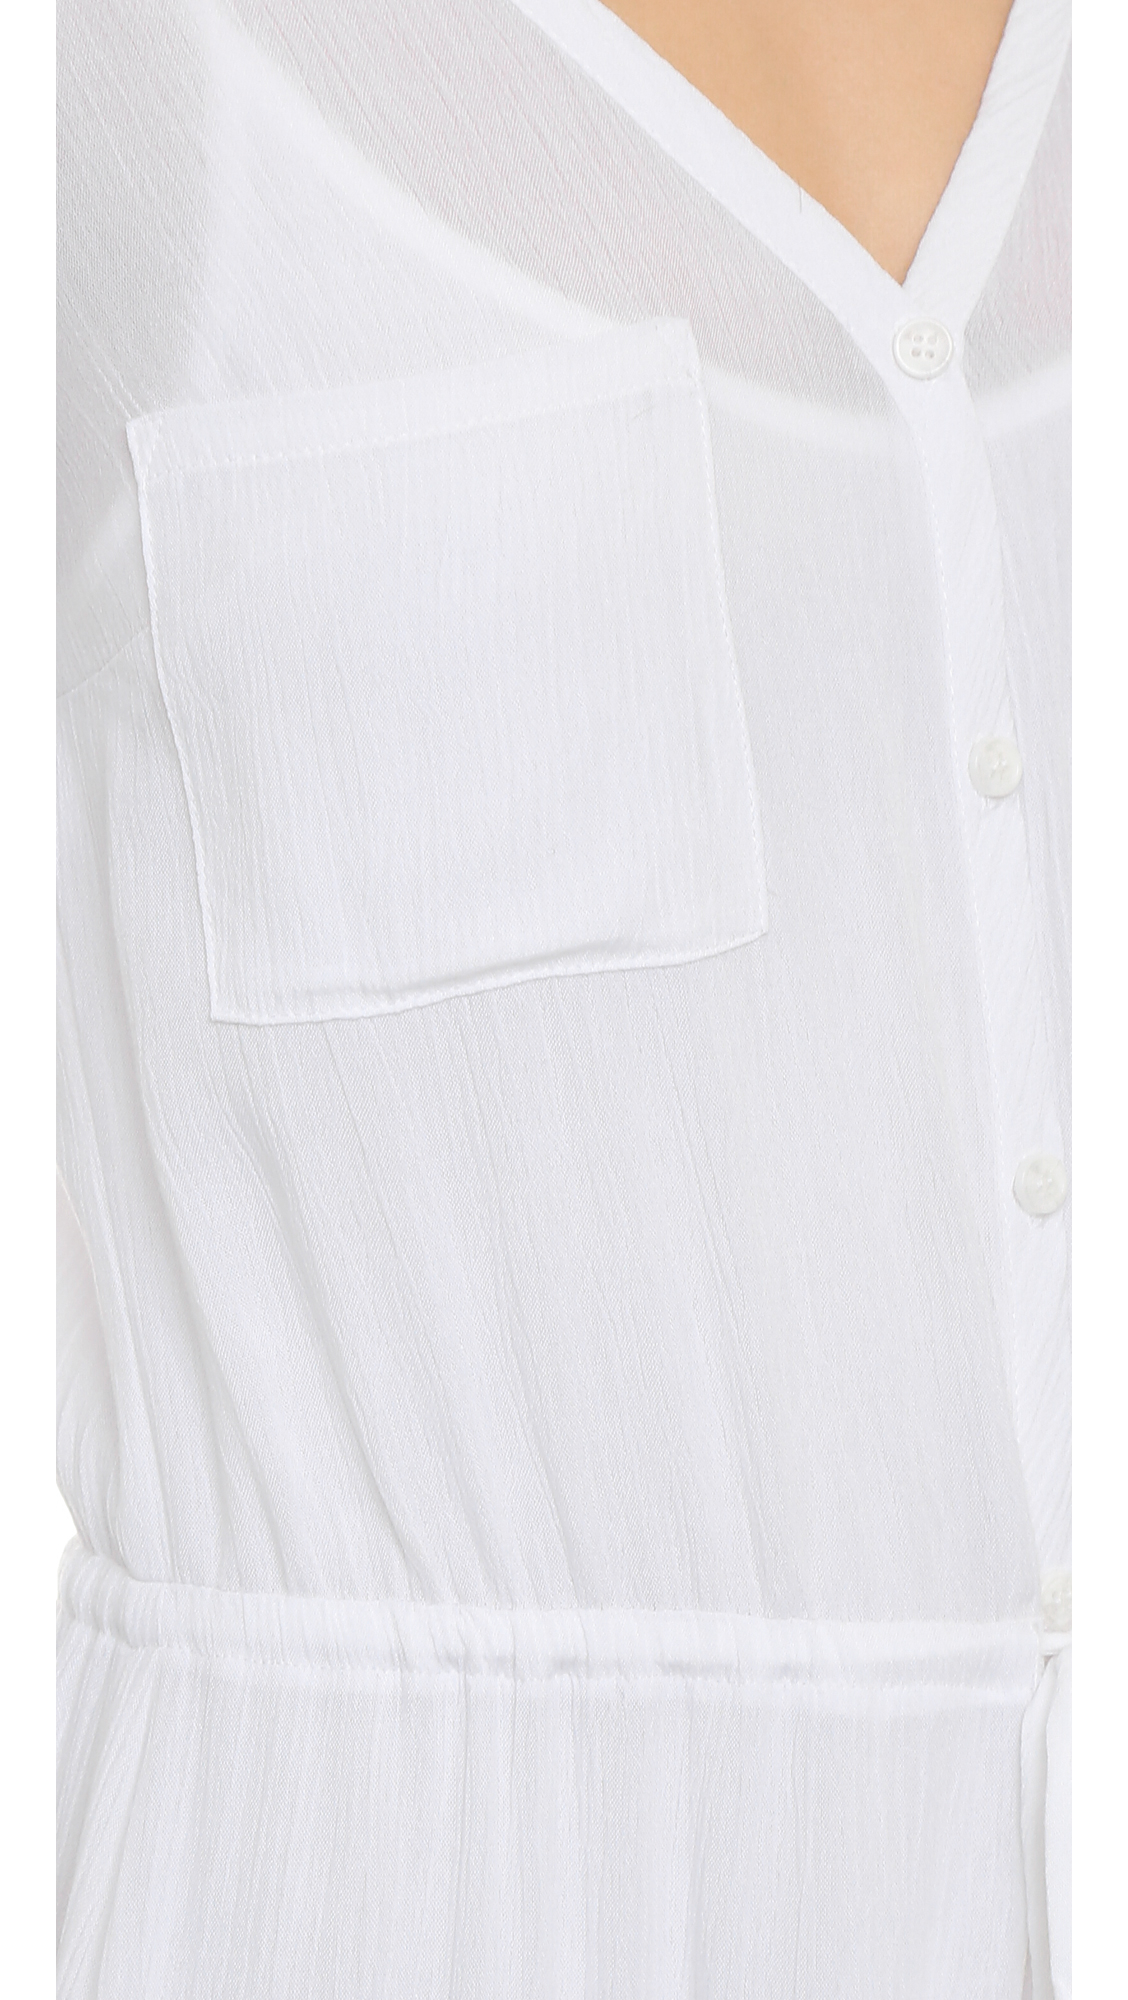 34d677ae2 Gallery. Previously sold at: Shopbop · Women's White Dresses